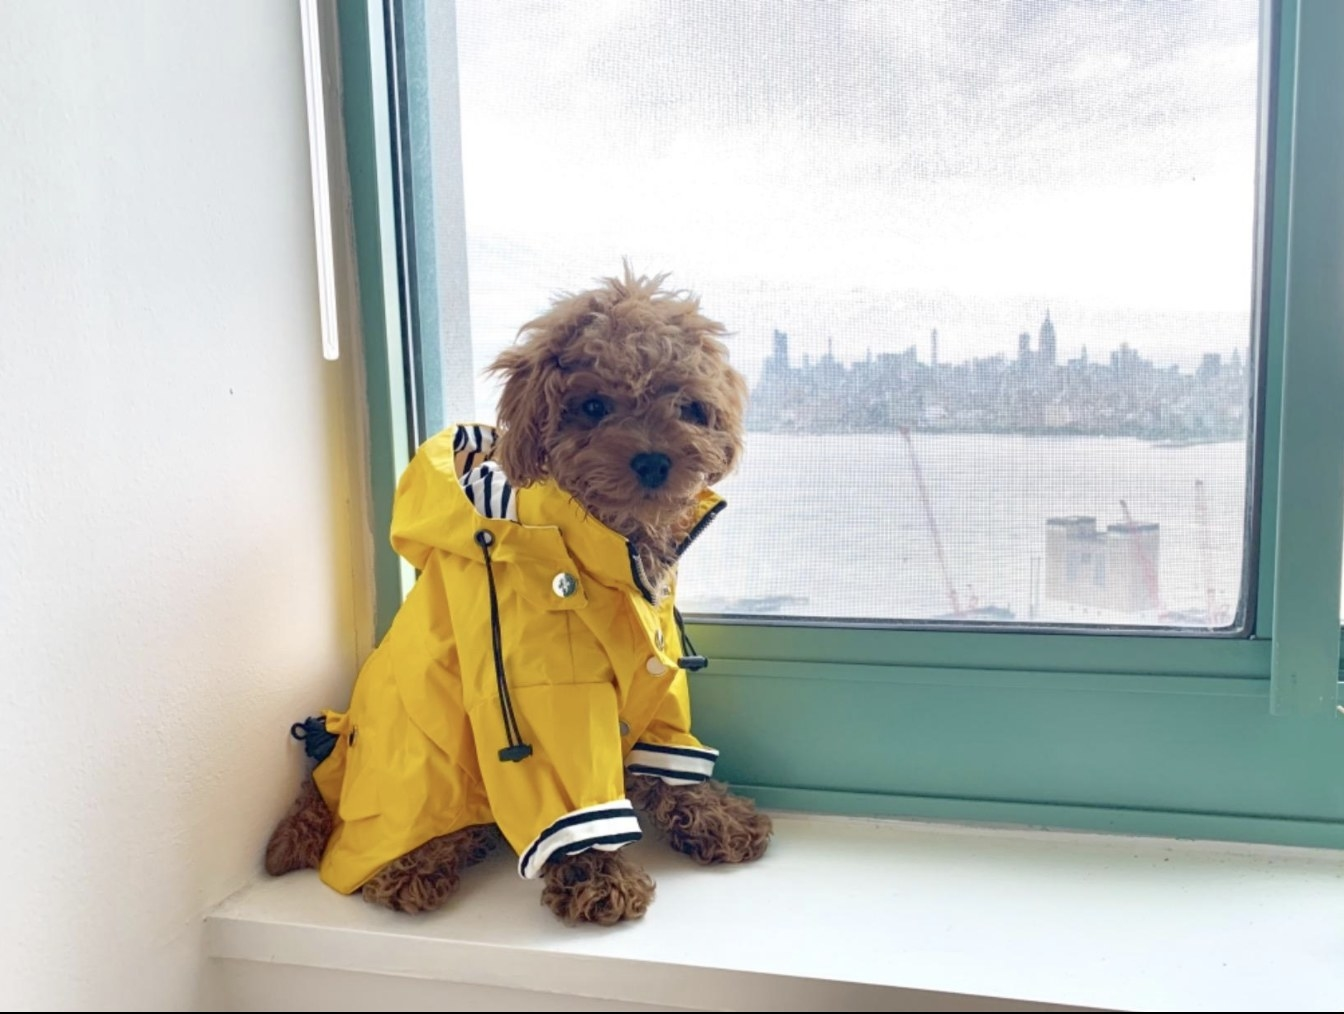 A very cute dog in a yellow raincoat